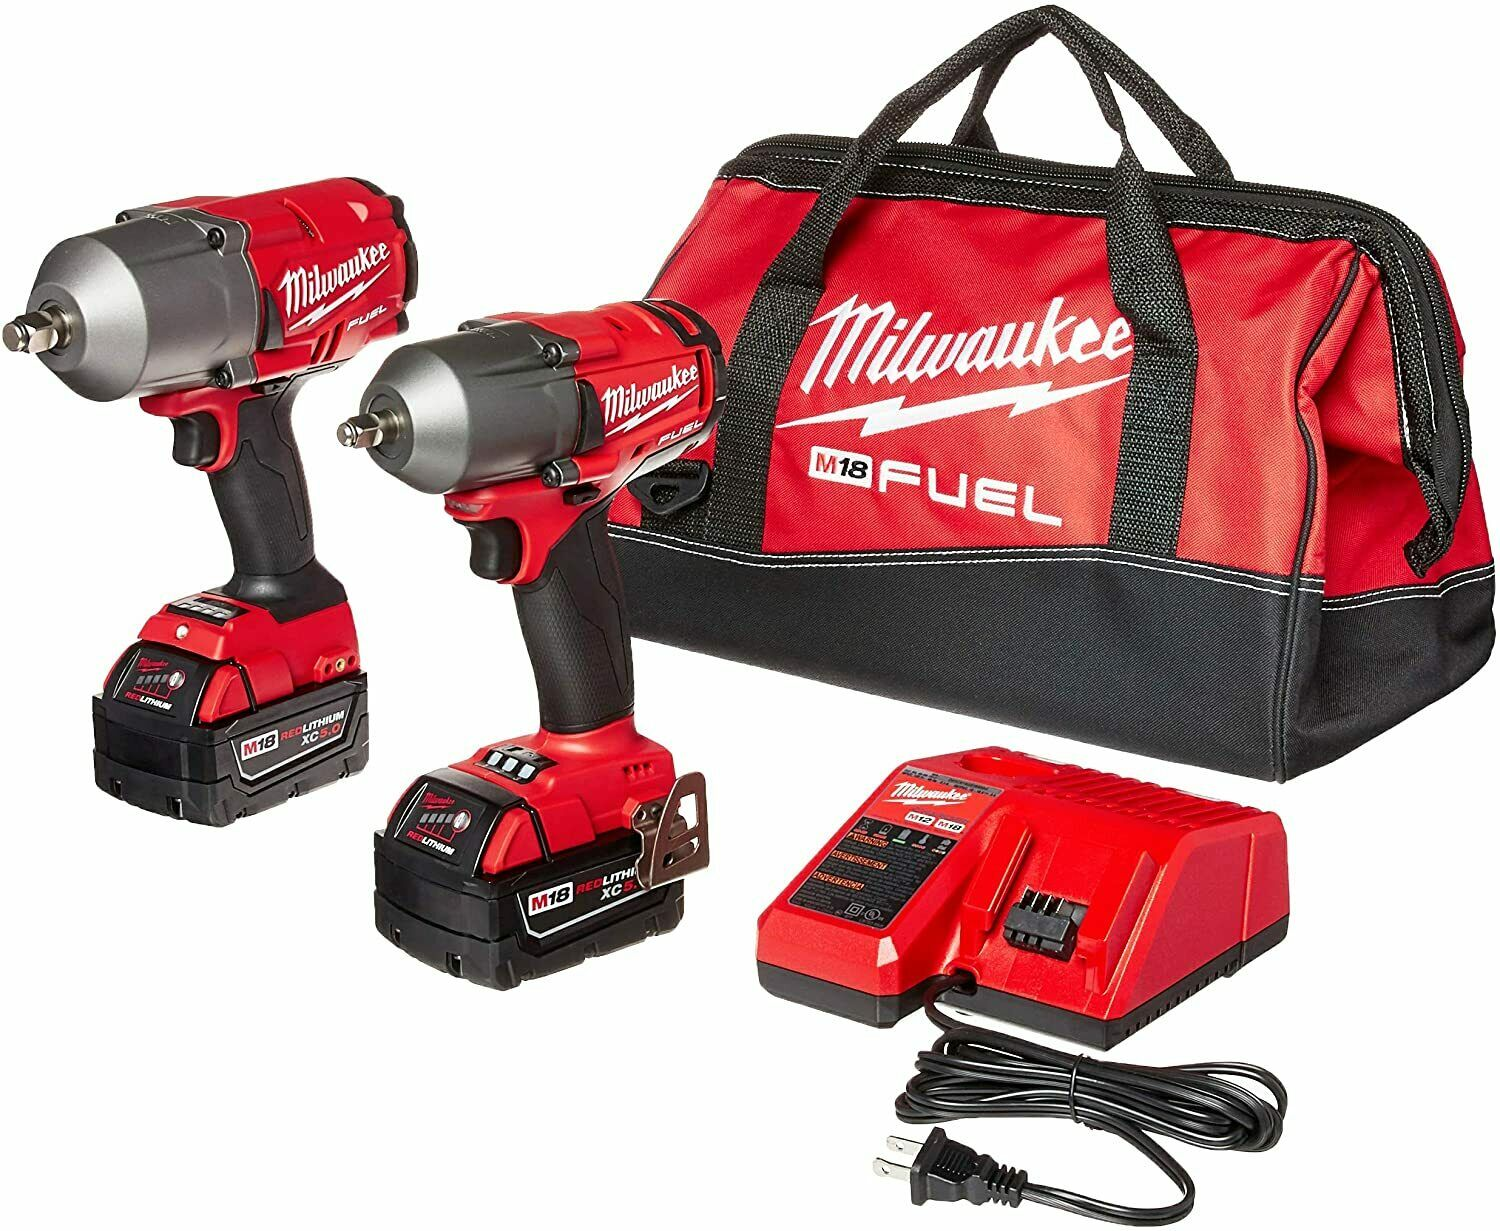 Milwaukee M18 FUEL Kit 1/2″ Impact Wrench & 3/8″ Impact Wrench W/ 2 Batteries